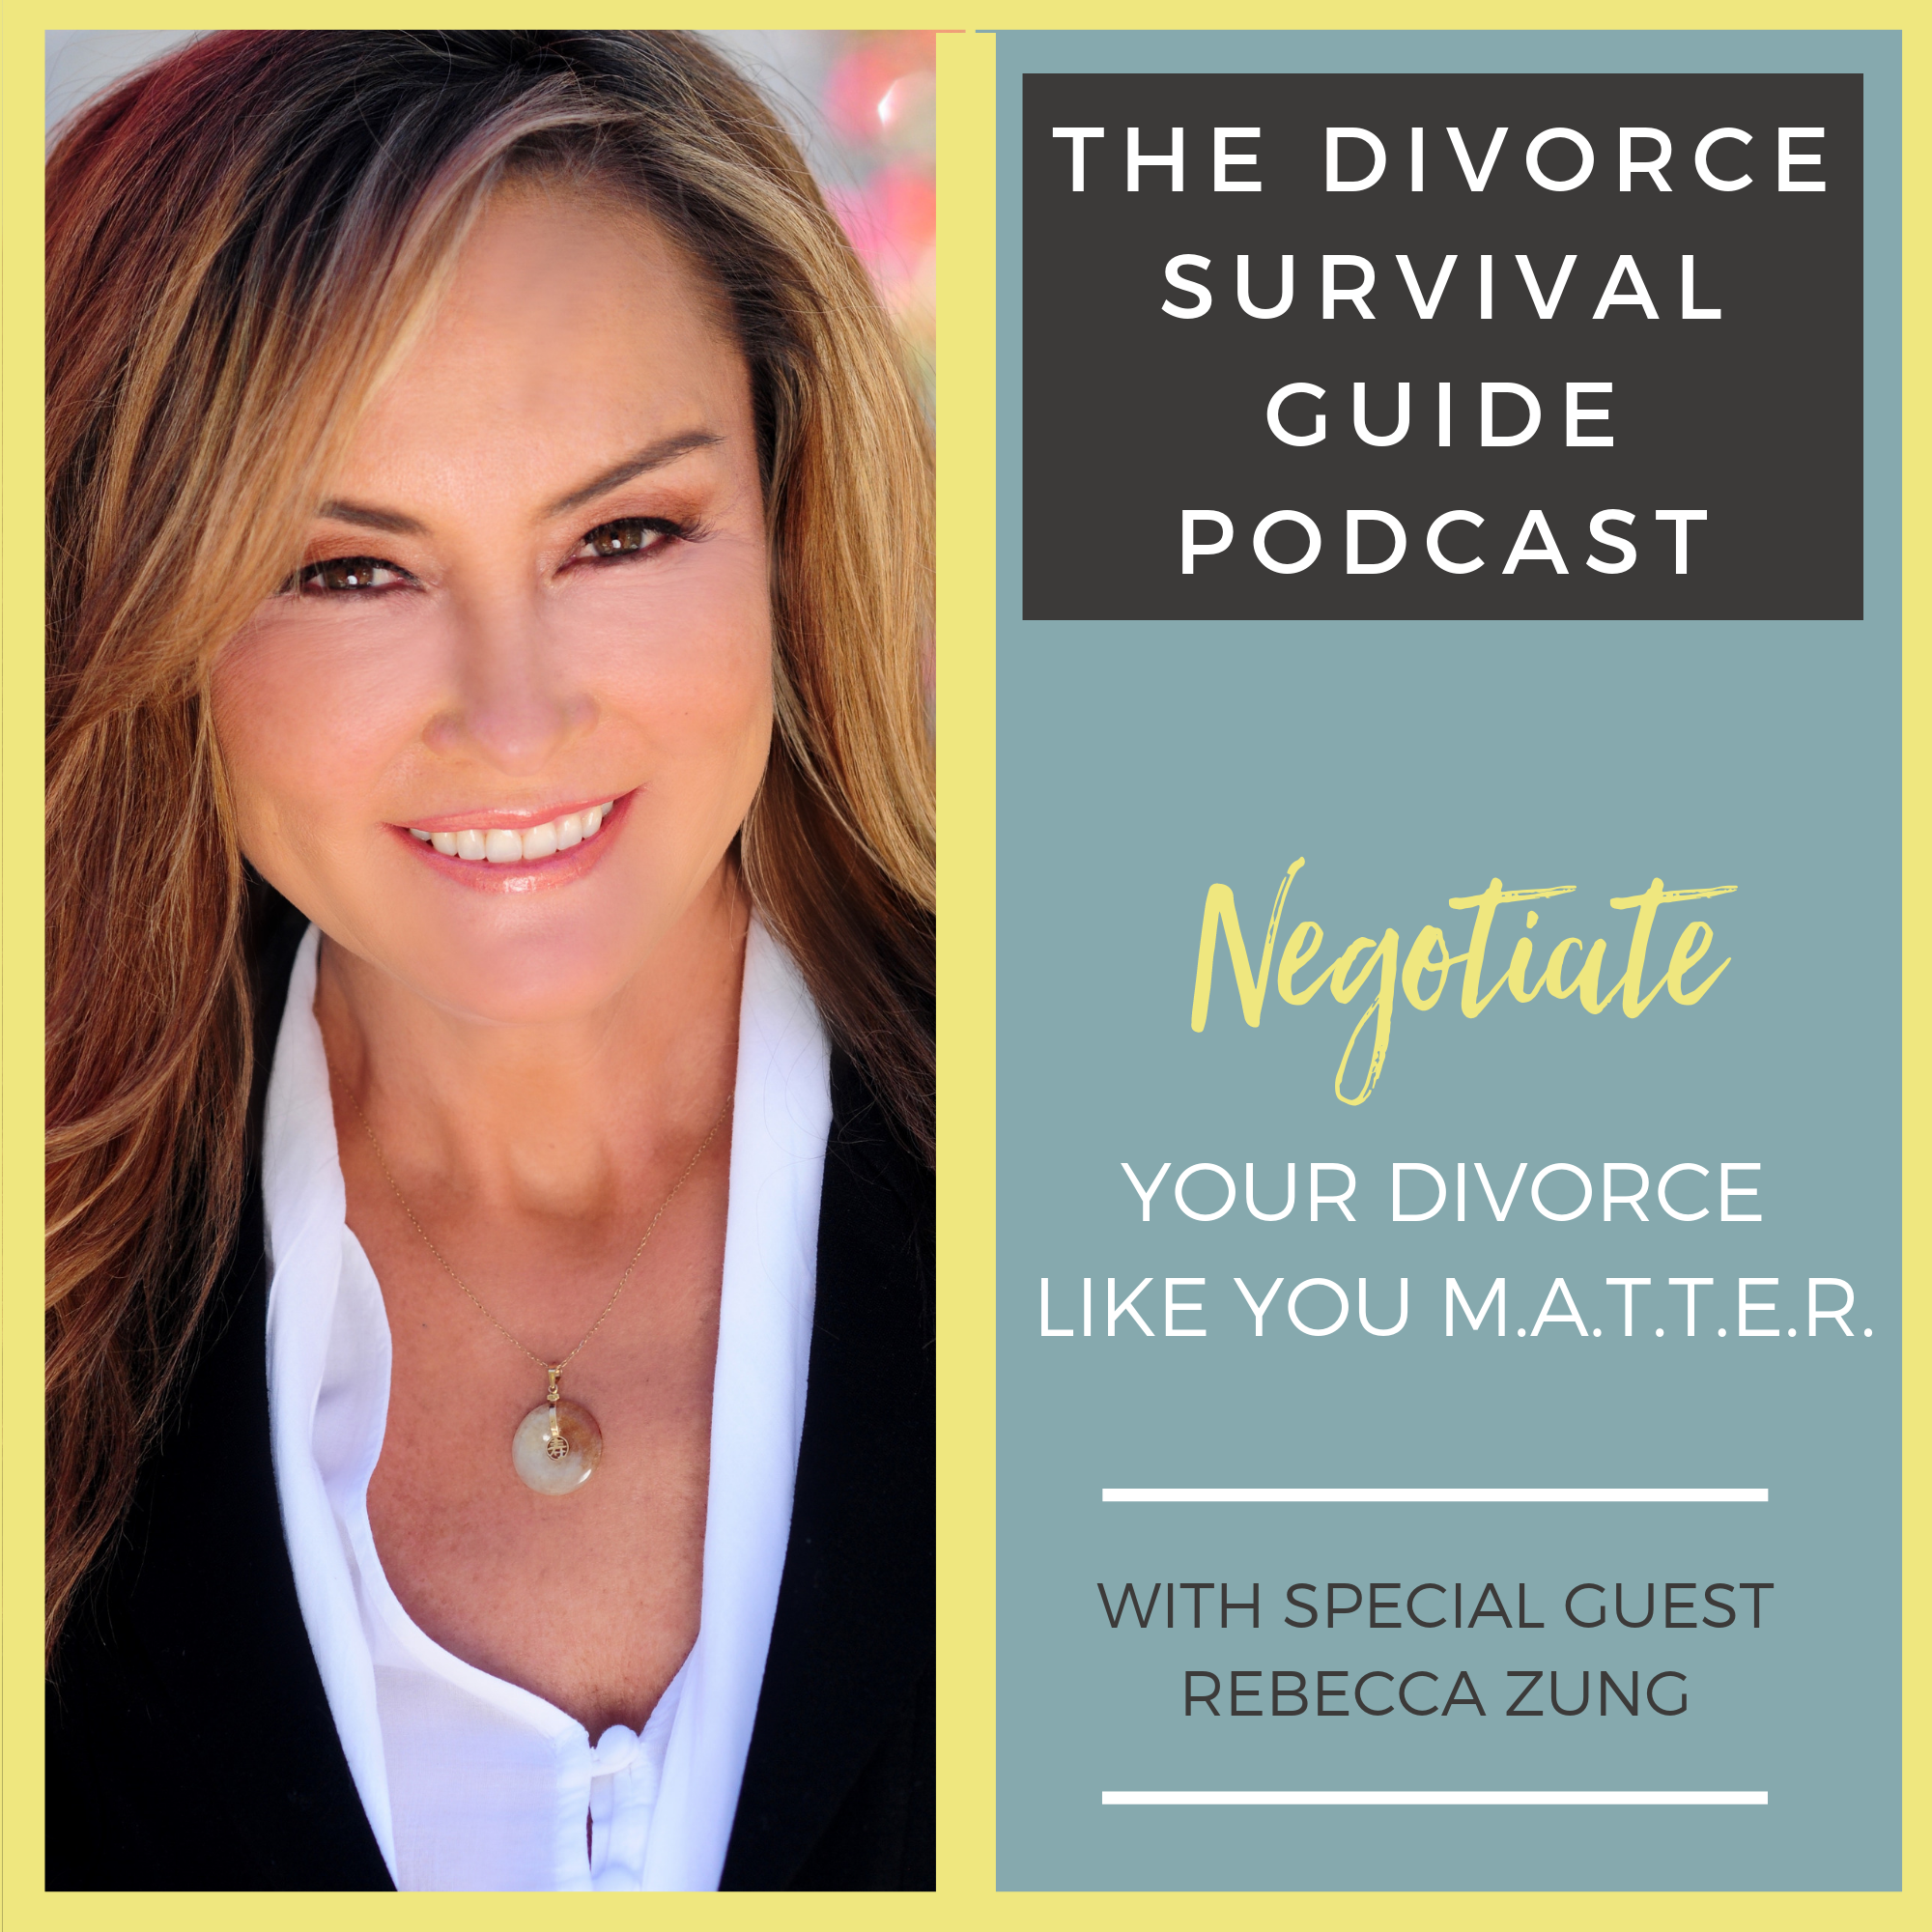 The Divorce Survival Guide Podcast - Negotiate Your Divorce Like You M.A.T.T.E.R. with Rebecca Zung